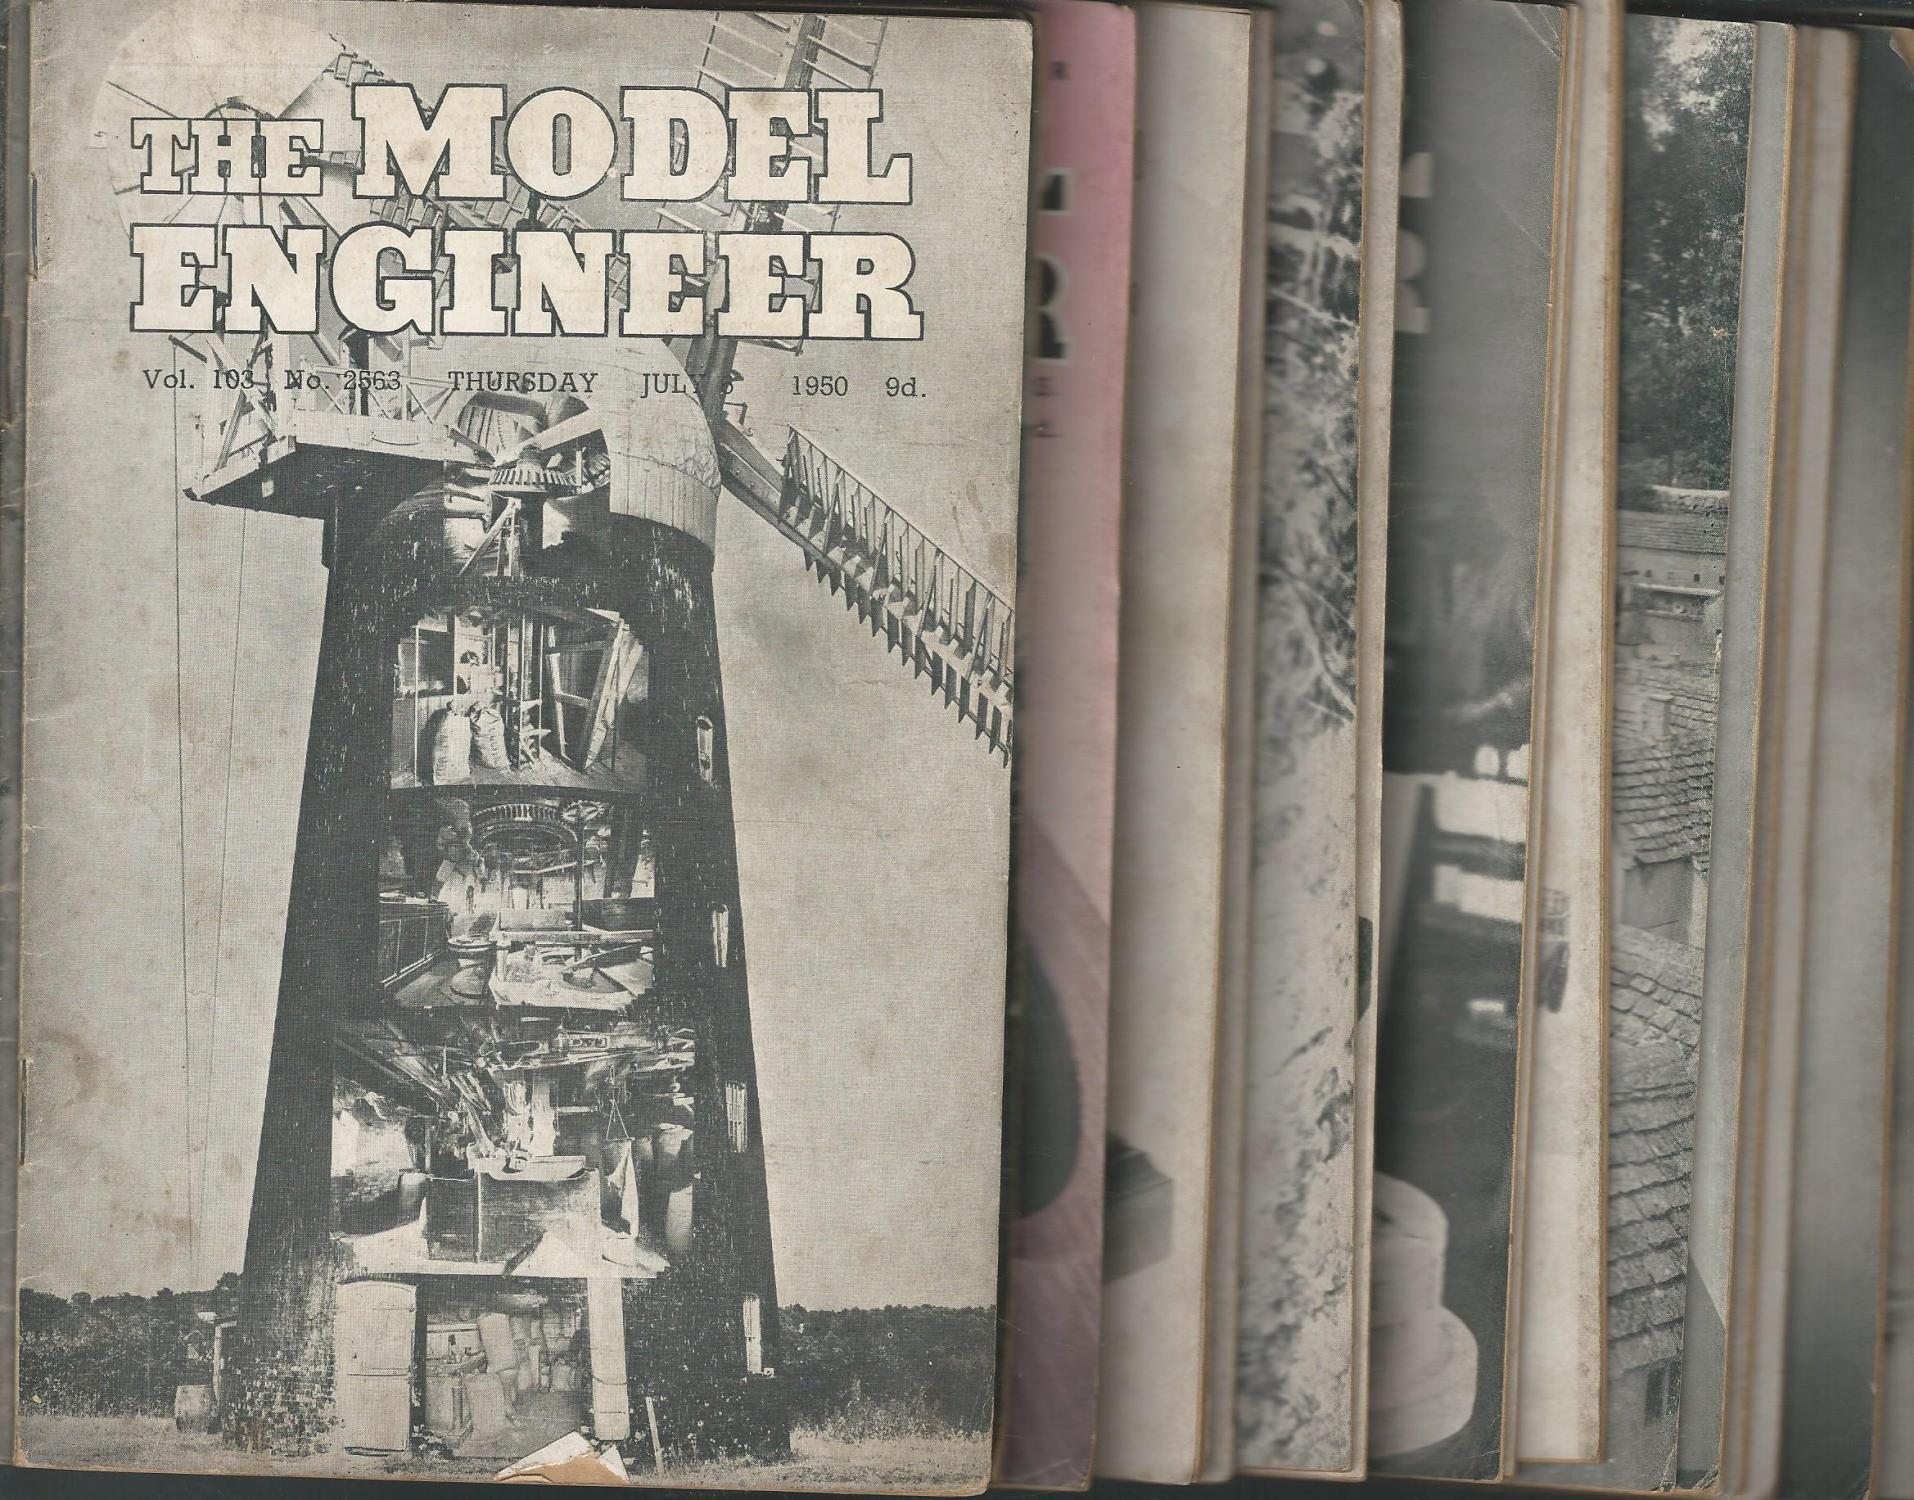 The Model Engineer : Volume 103 (26 Issues, July-December, 1950 Unknown) Percival Marshall & Co Very Good Softcover minor wear only.Steam Engines, Clocks, Racing Cars, Gears, Railroads, Trucks, Cars, Gasoline Engines, Radio-Control, Cannons, Lathes, Slide Projectors